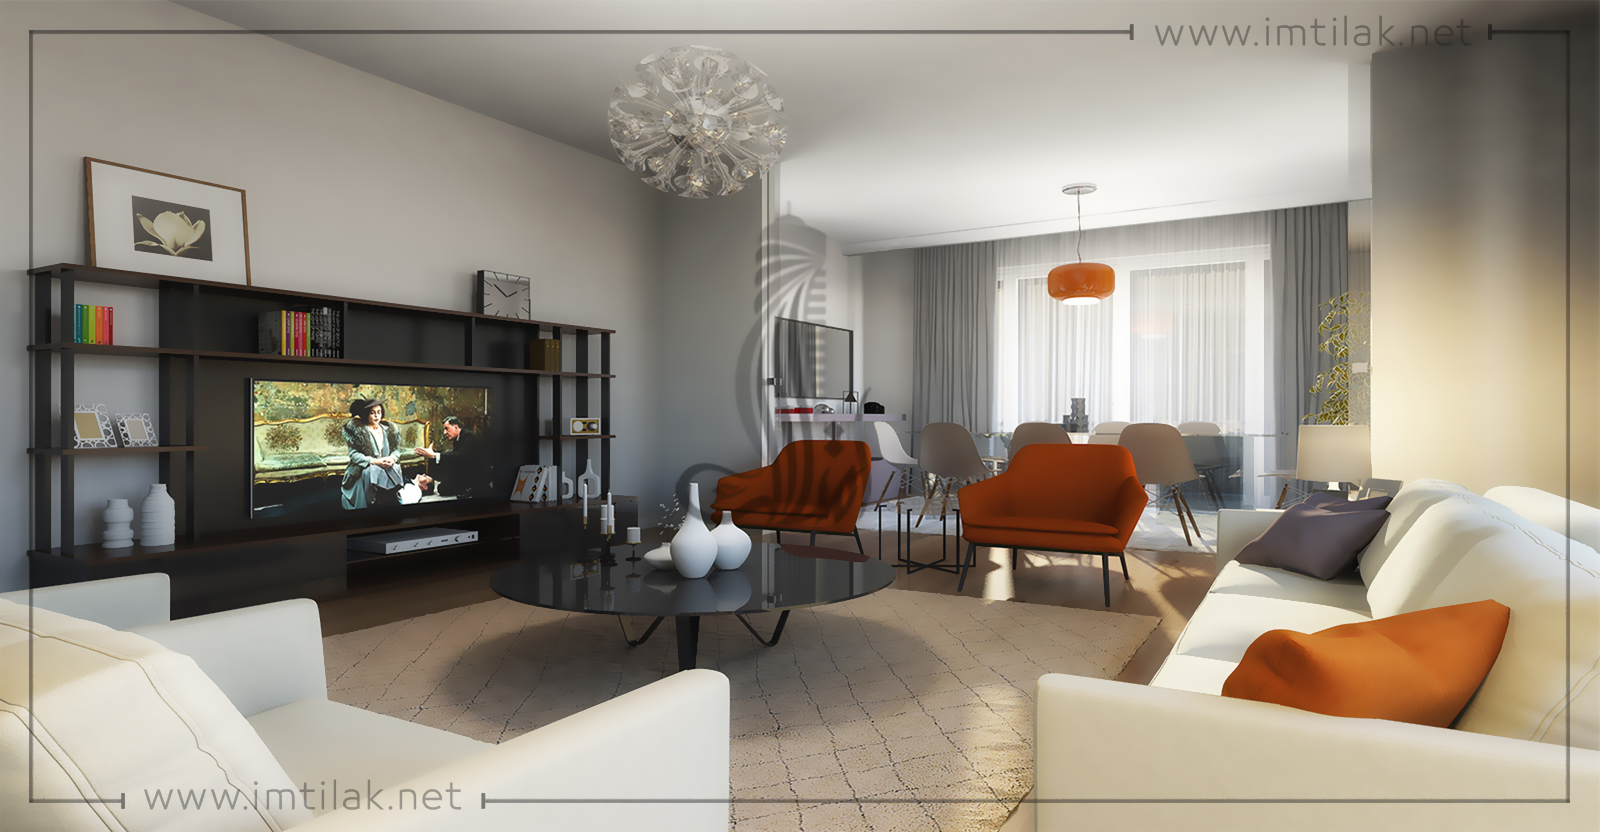 Istanbul Turkey Real Estate For Sale - IMT-72 Europe Residence Project